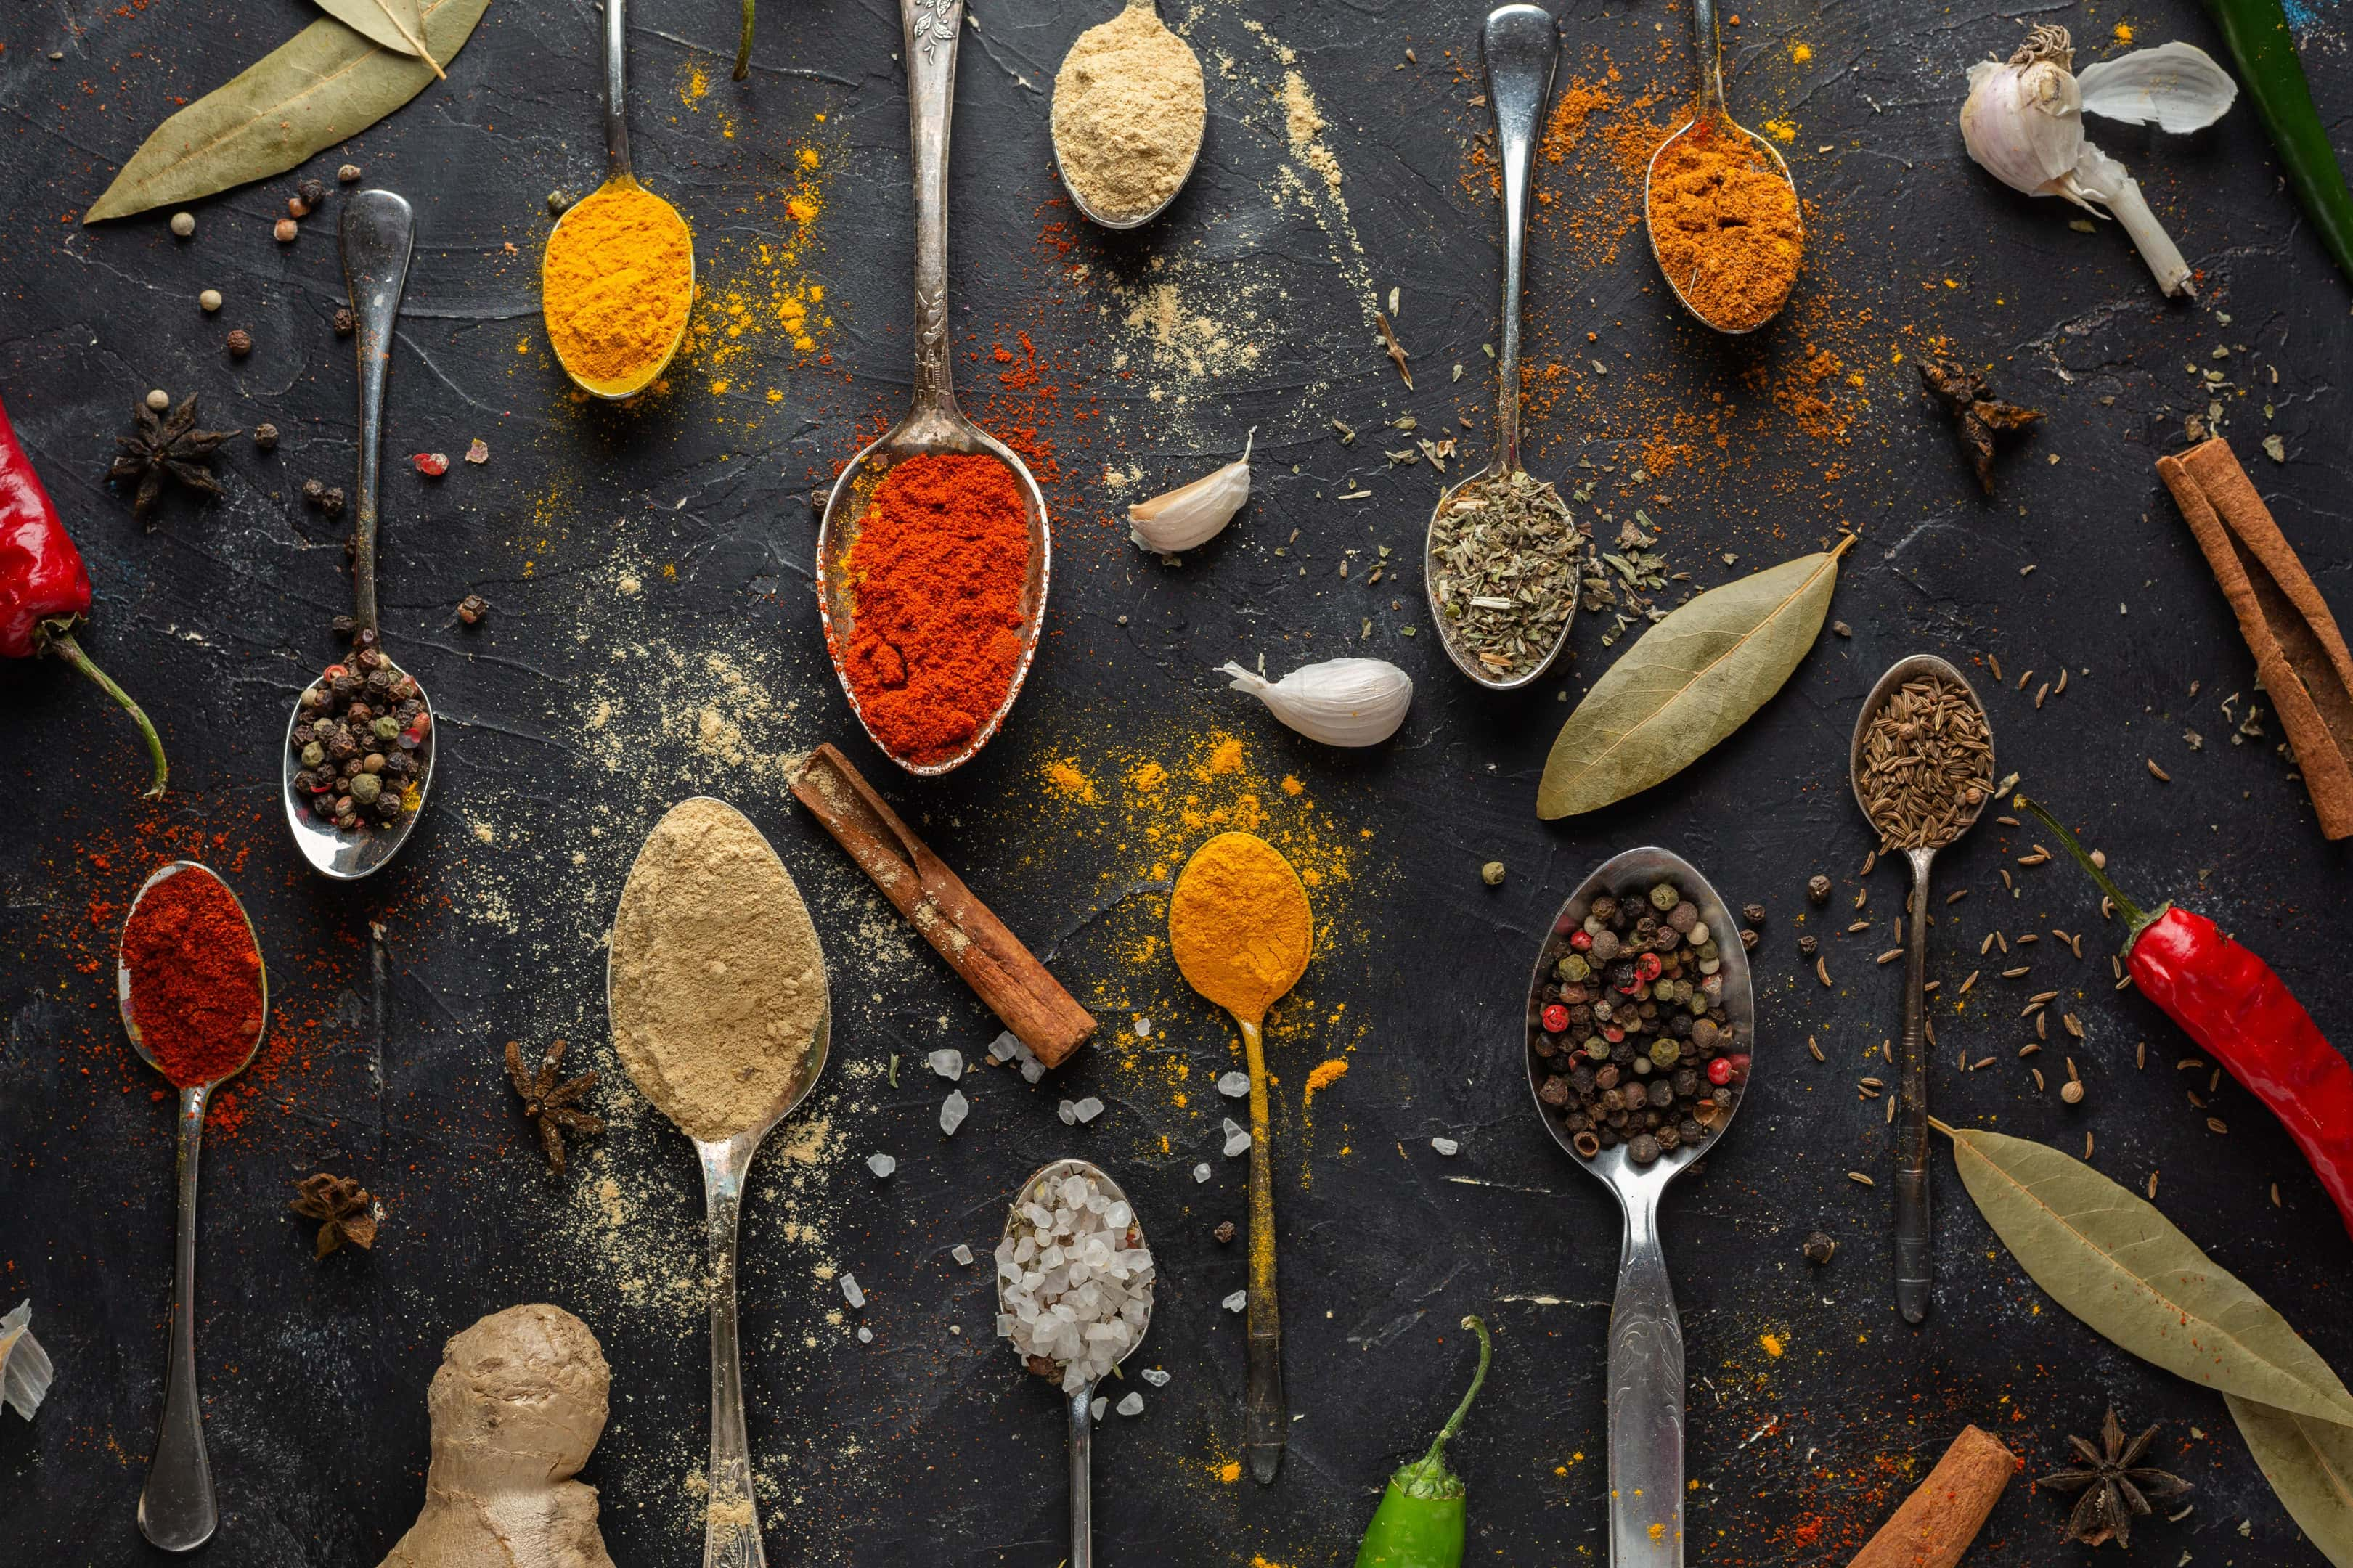 Variety of spices on black table